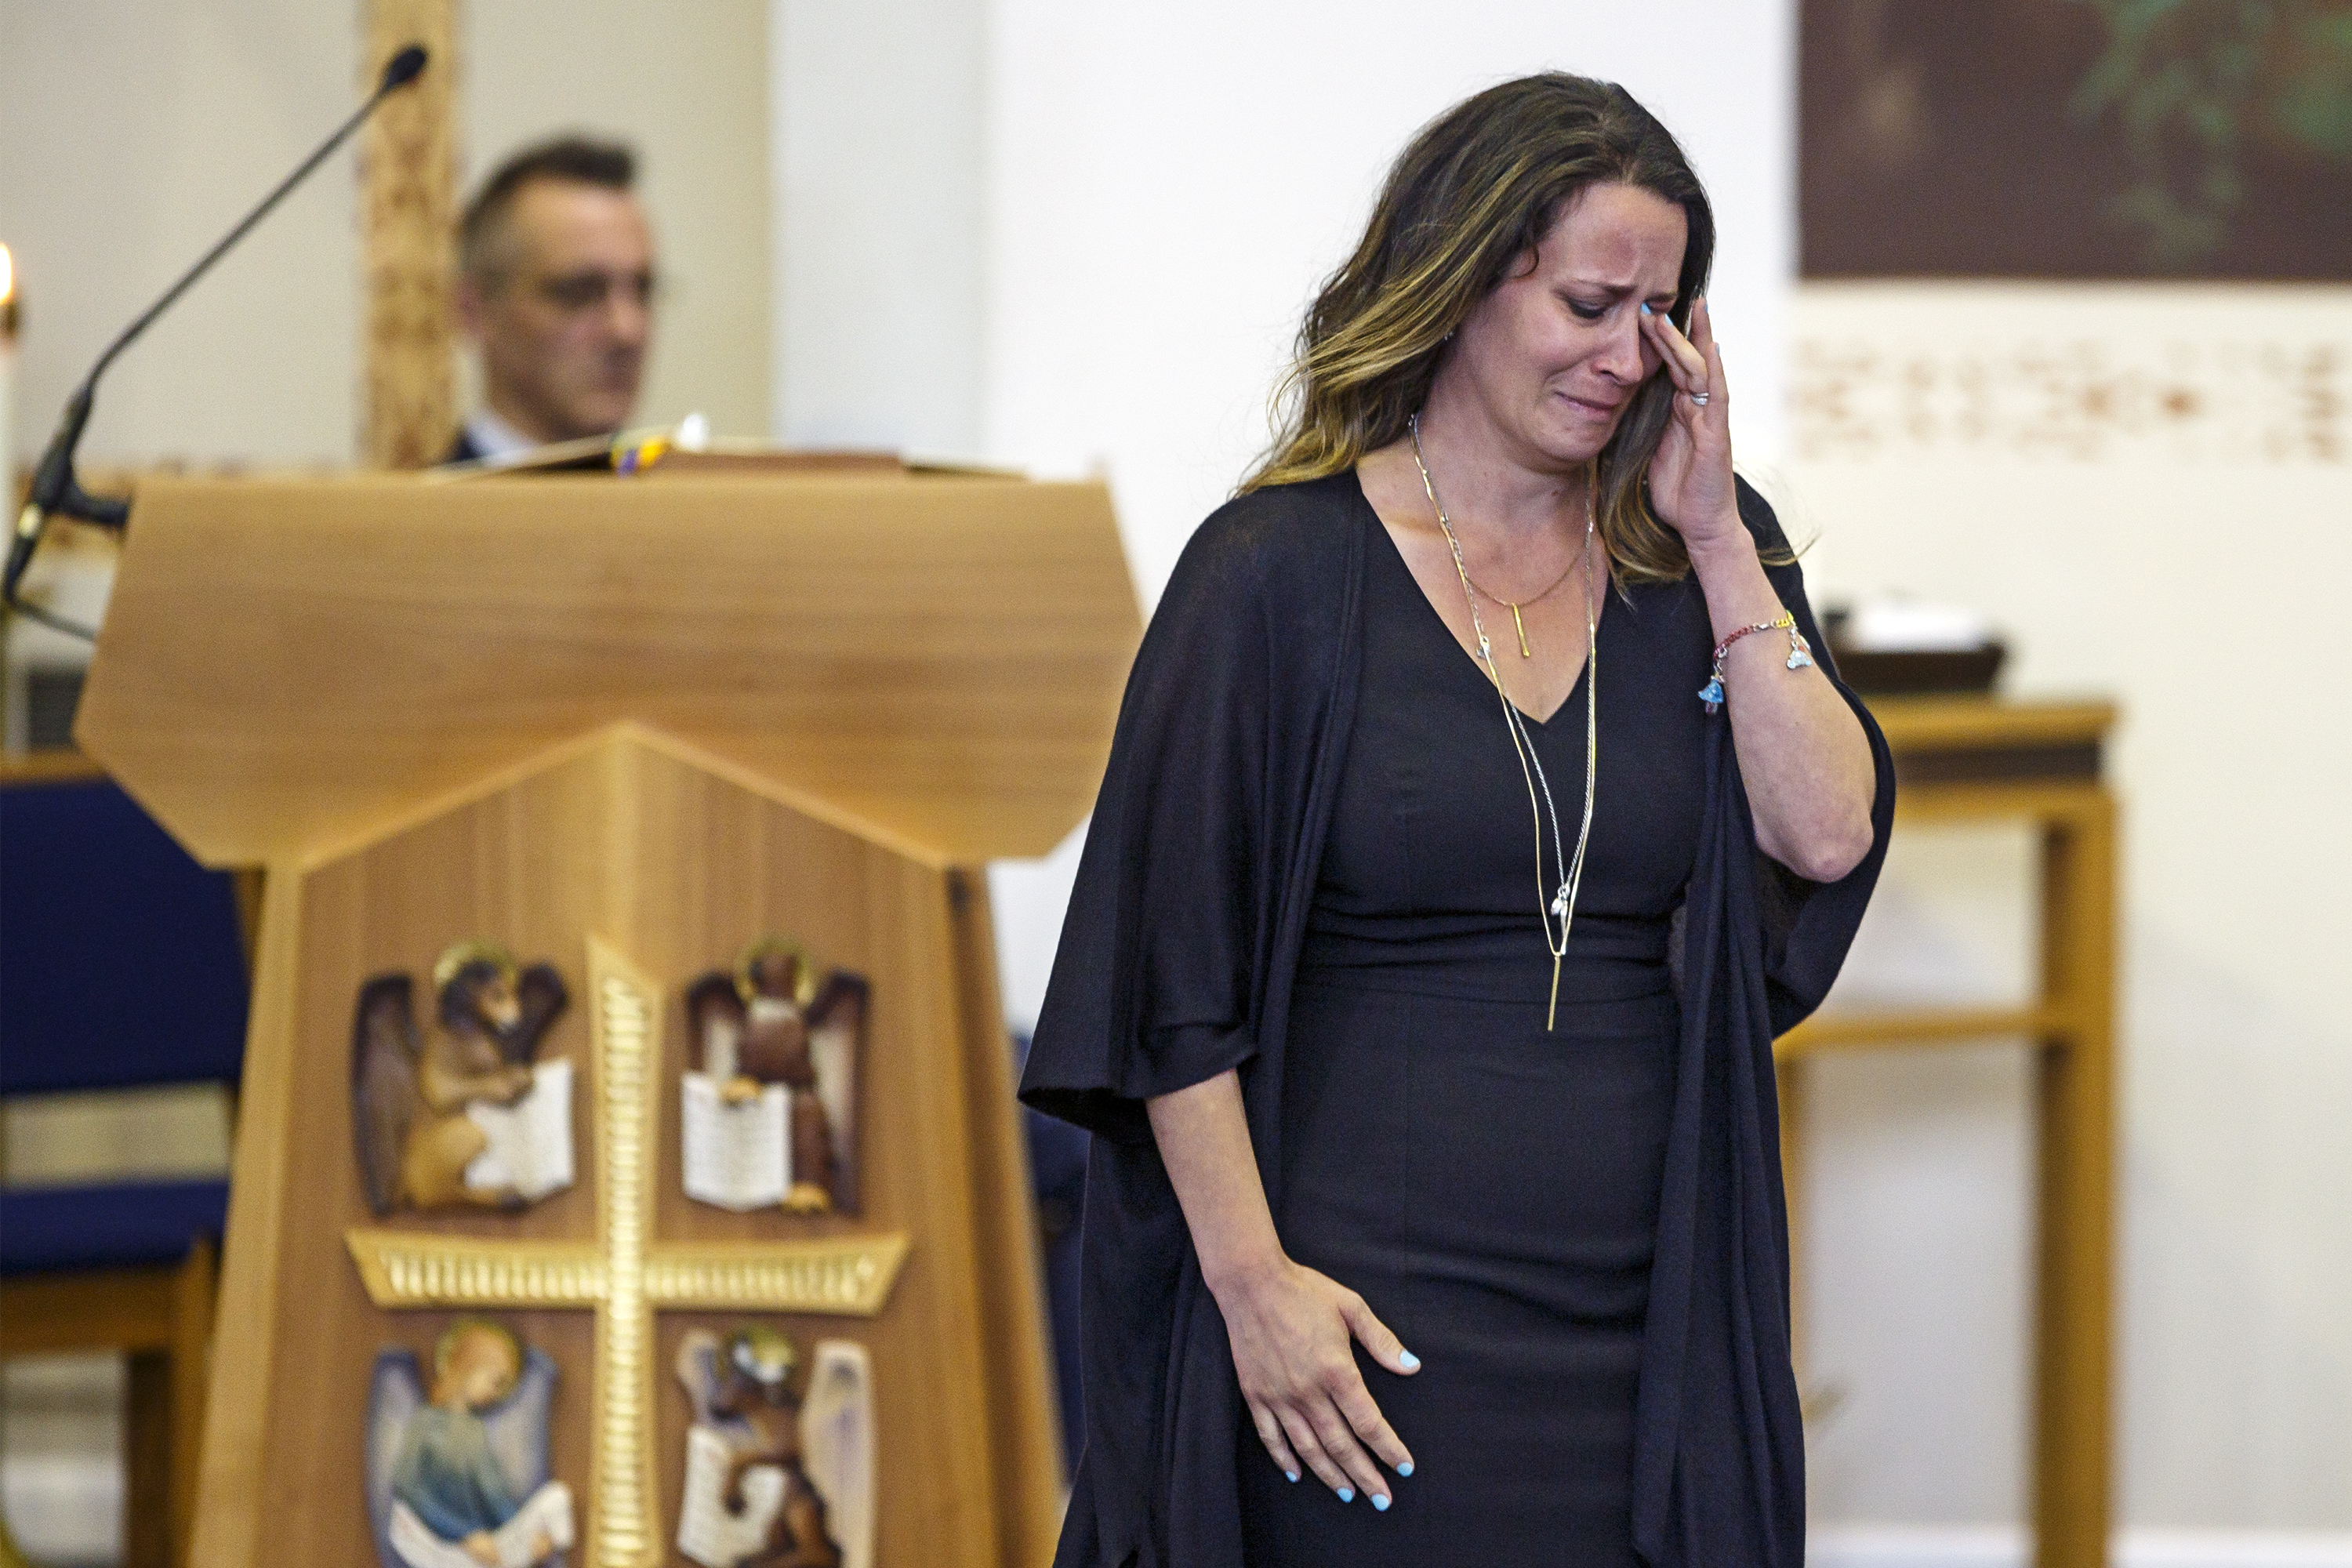 Kathryn Sherlock wipes away tears after speaking at the Aug. 11 funeral for her daughter, Kayden Mancuso.